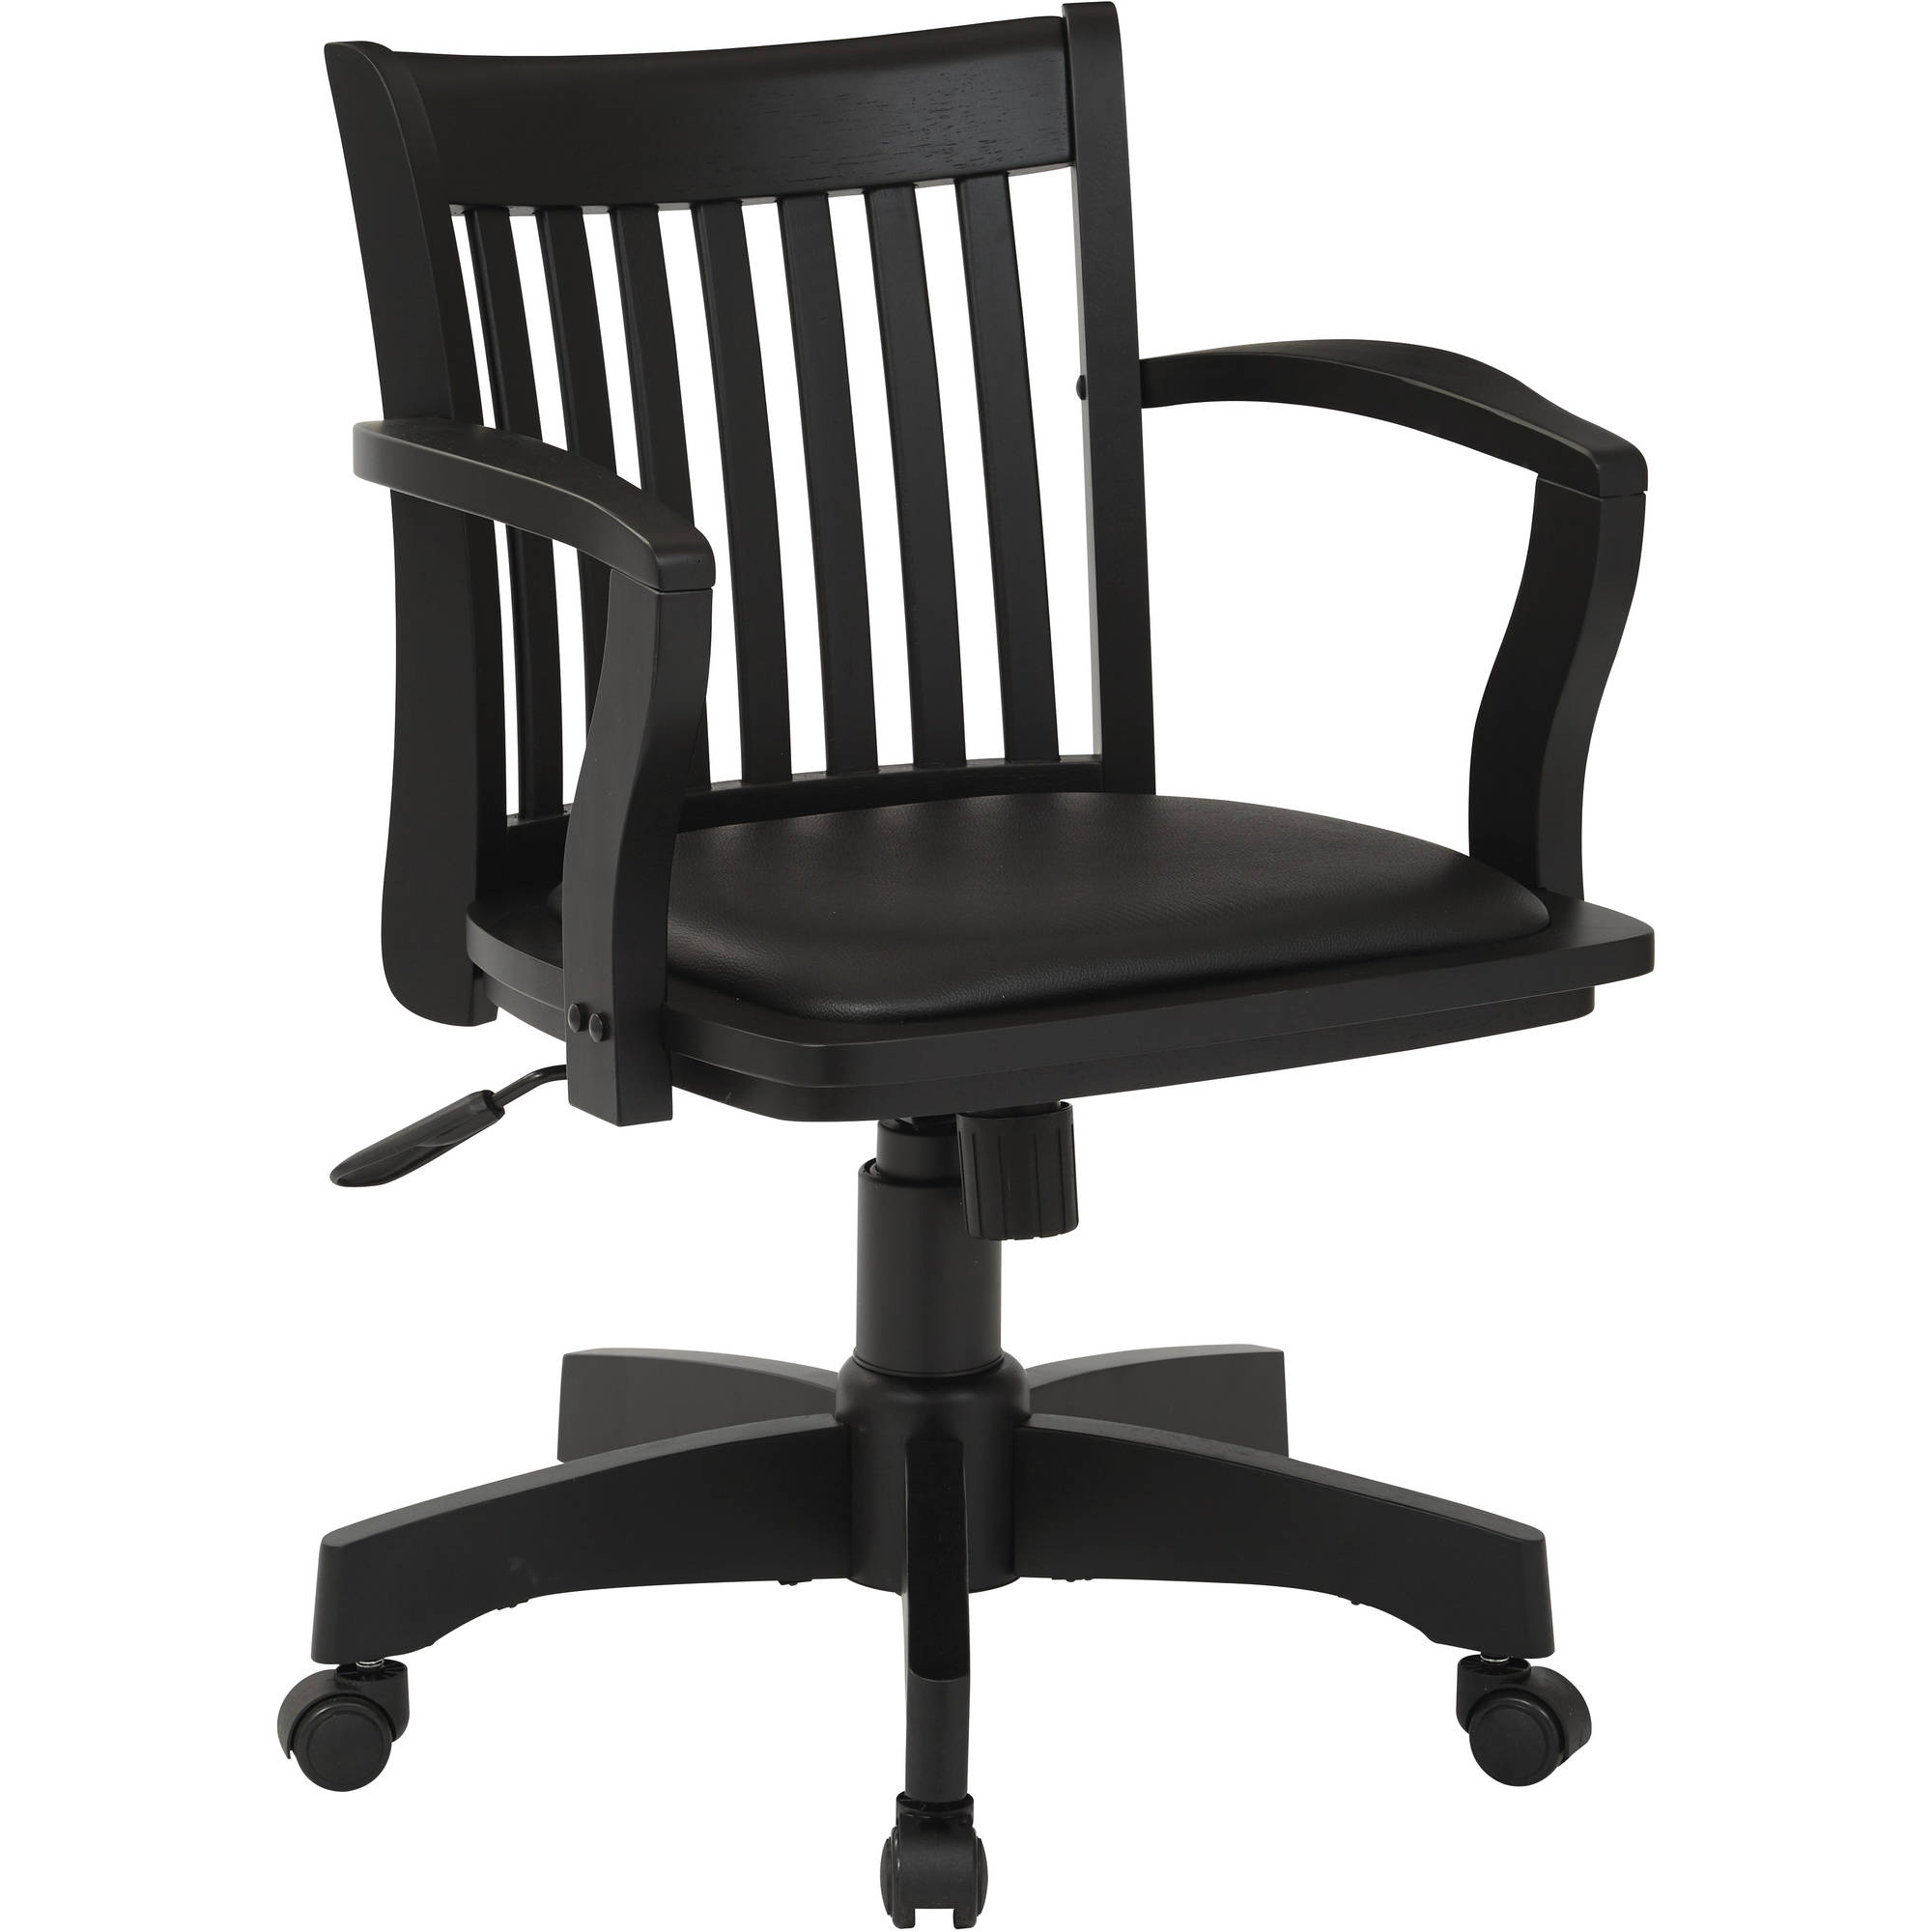 swivel chair walmart ergonomic john lewis flash furniture high back black designer mesh executive